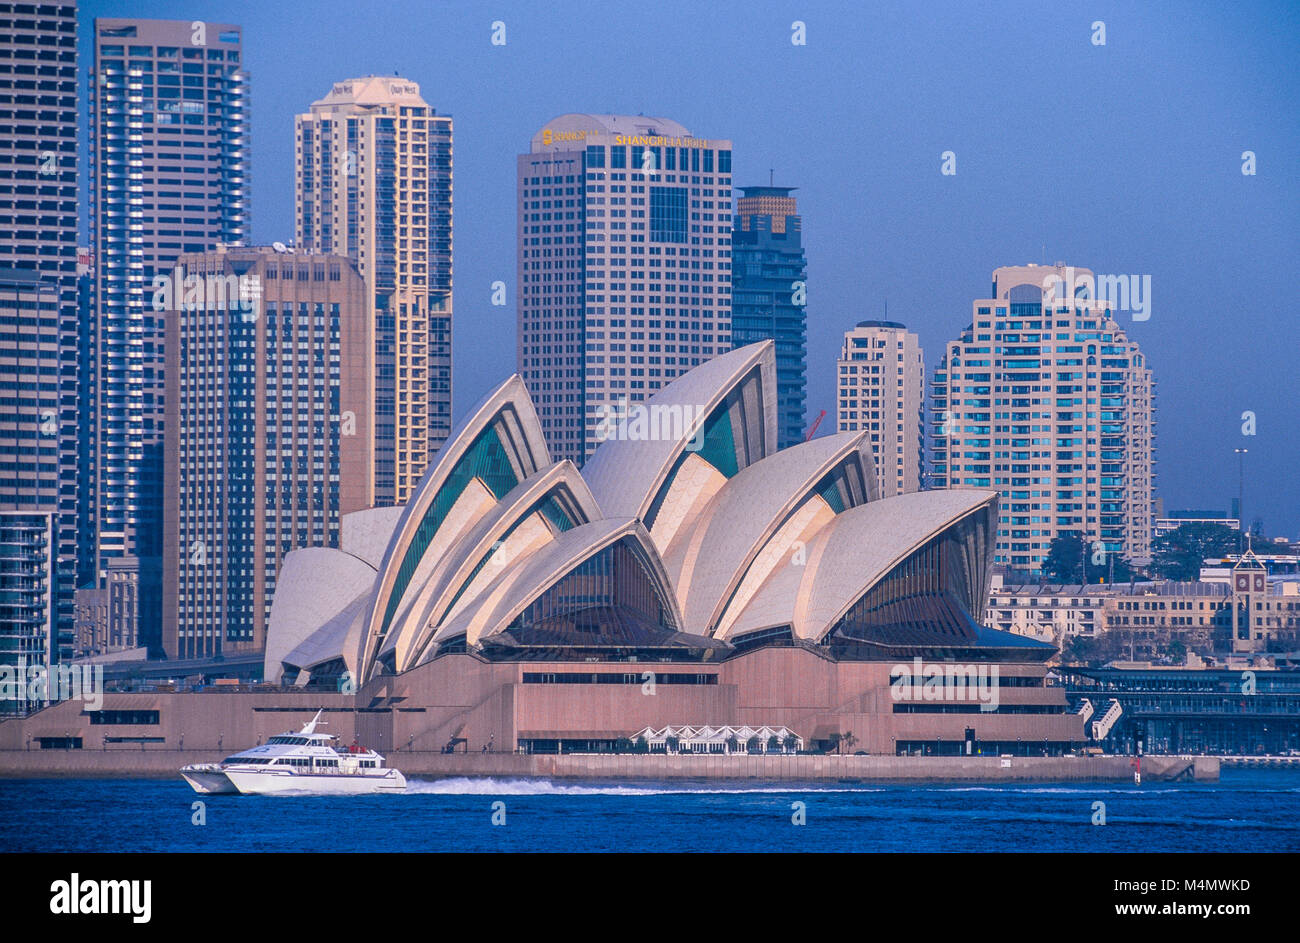 Sydney Opera House is situated at Bennelong Point on the shores of Sydney Harbour in Australia. It was designed - Stock Image